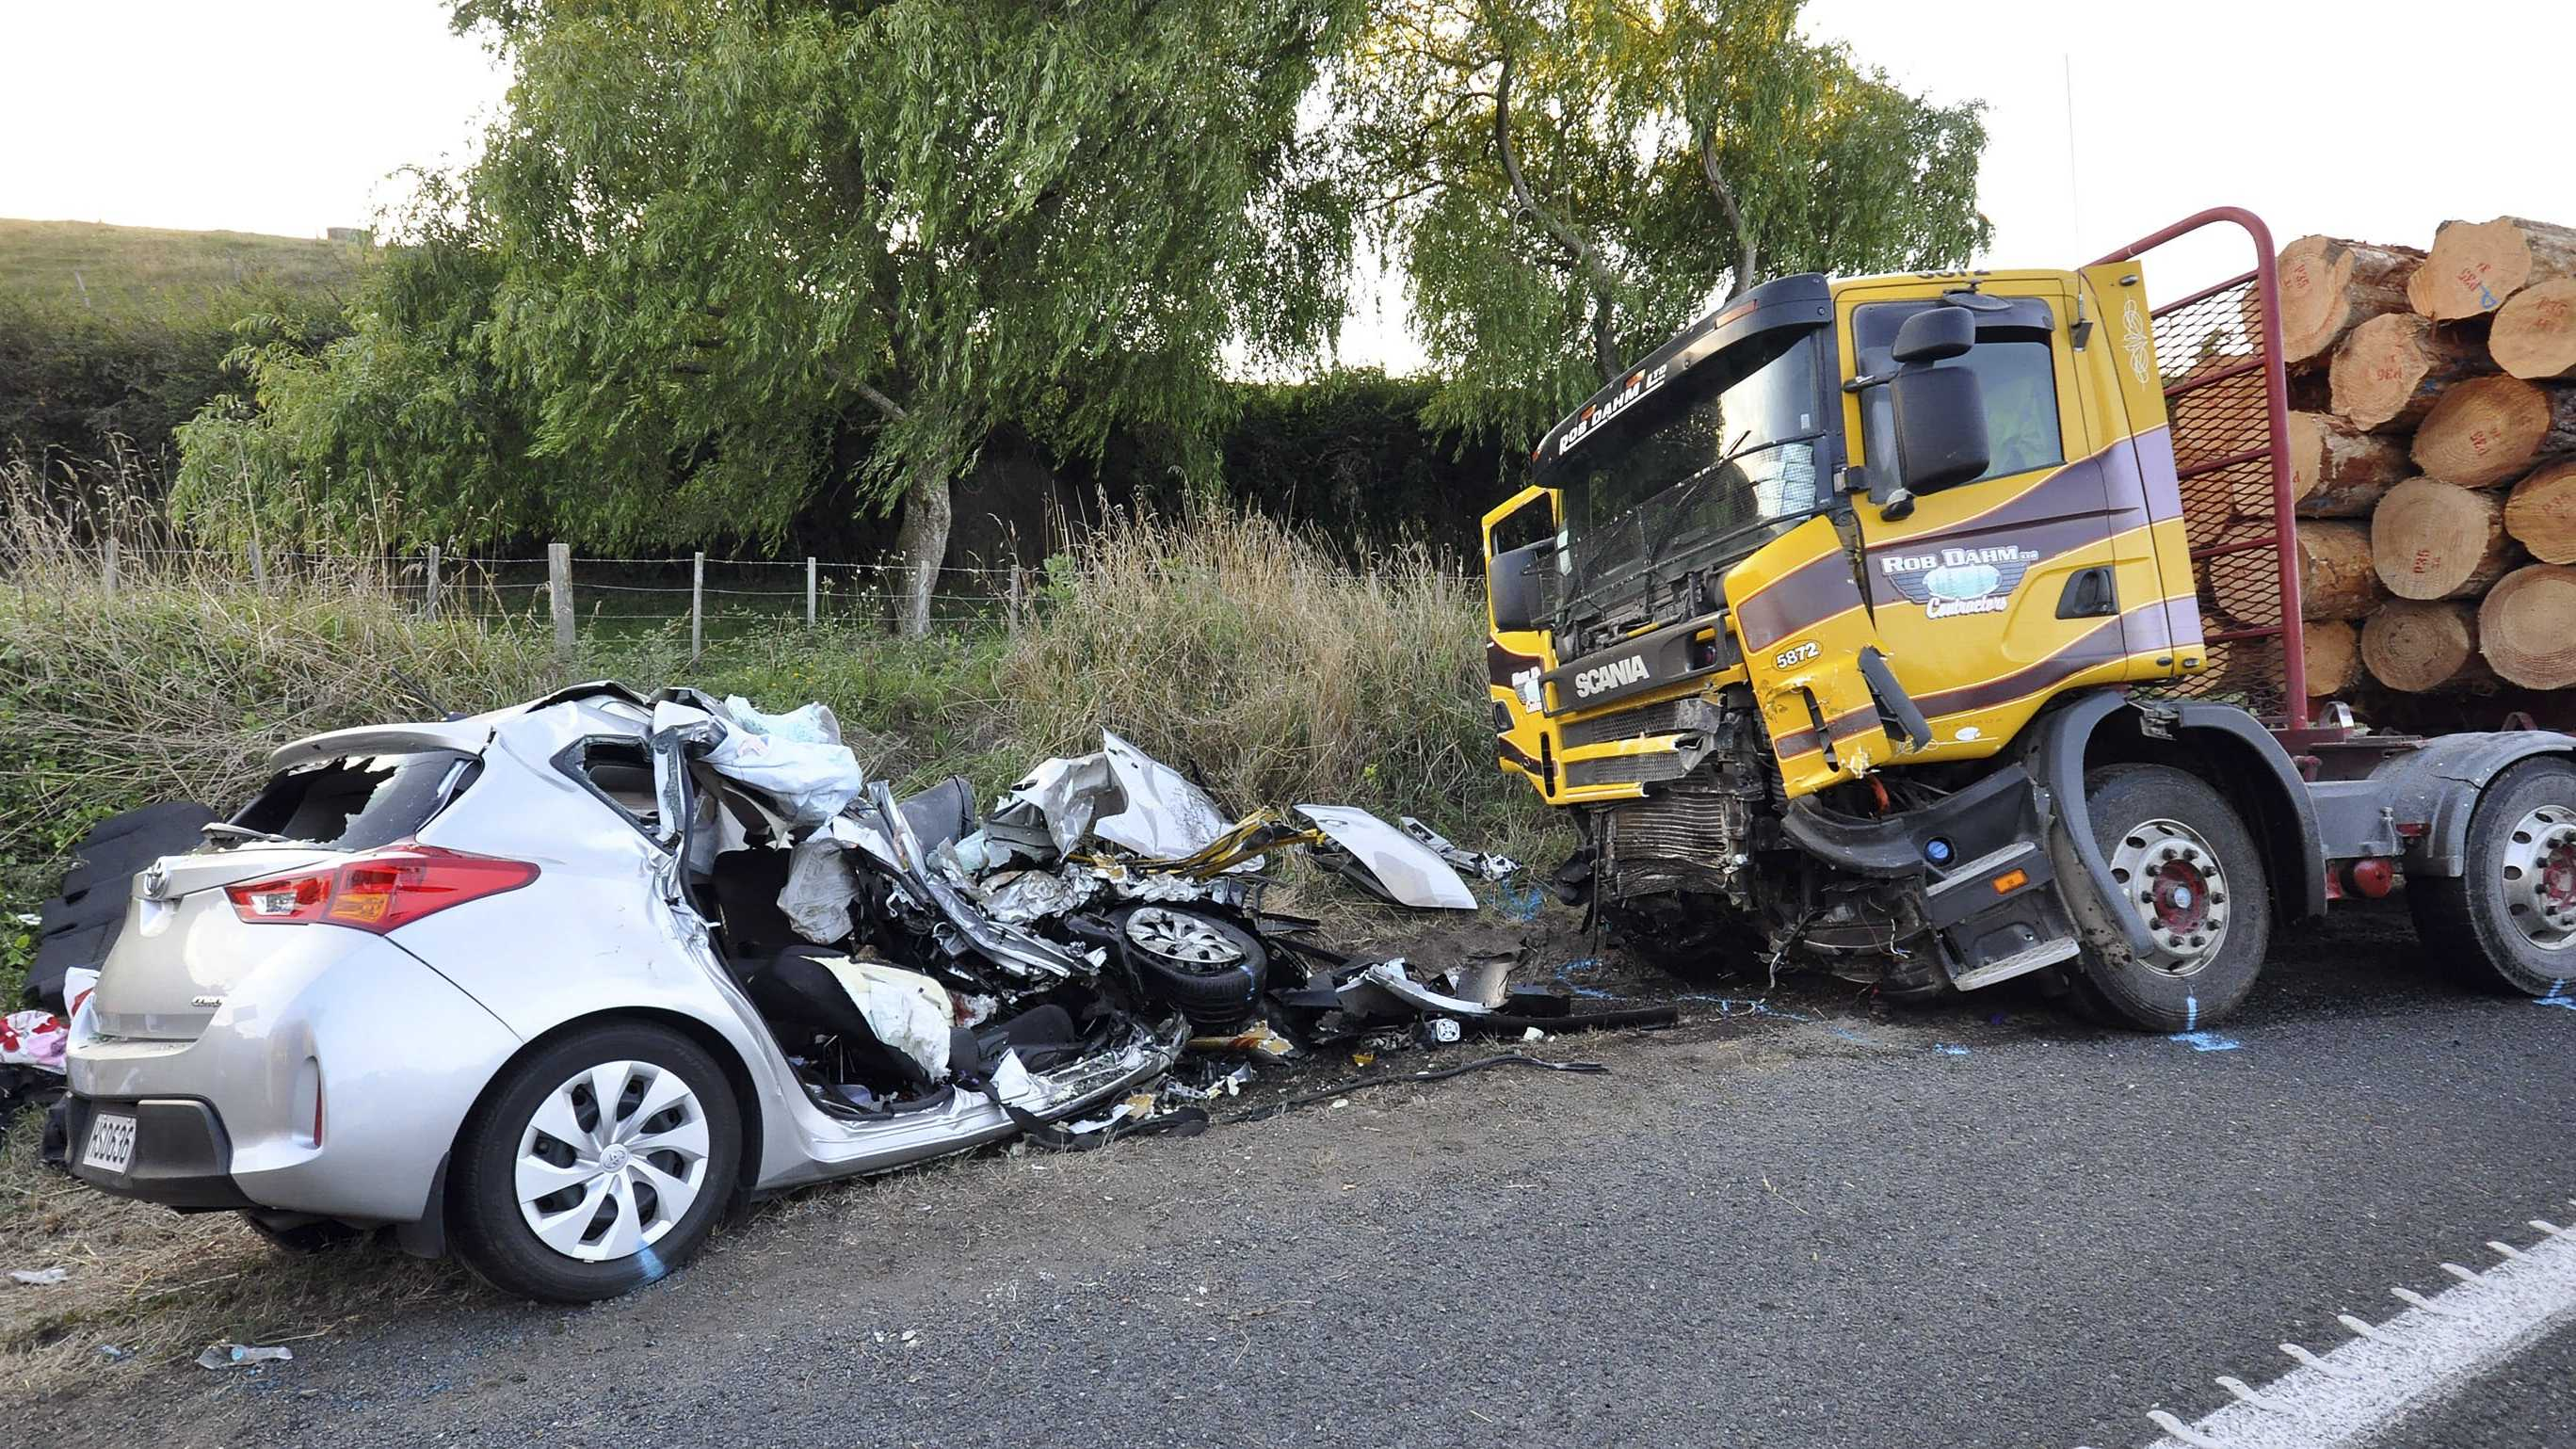 In this Tuesday Feb. 17, 2015 photo, a car and a logging truck sit damaged after they collided head-on near Tokoroa, New Zealand. New Zealand authorities said Thursday, Feb. 19 that U.S. citizens Warren Lee, his wife Aesoon Lee and the couple's daughter, Julia Lee were killed and their son critically injured when their car crashed into the logging truck.